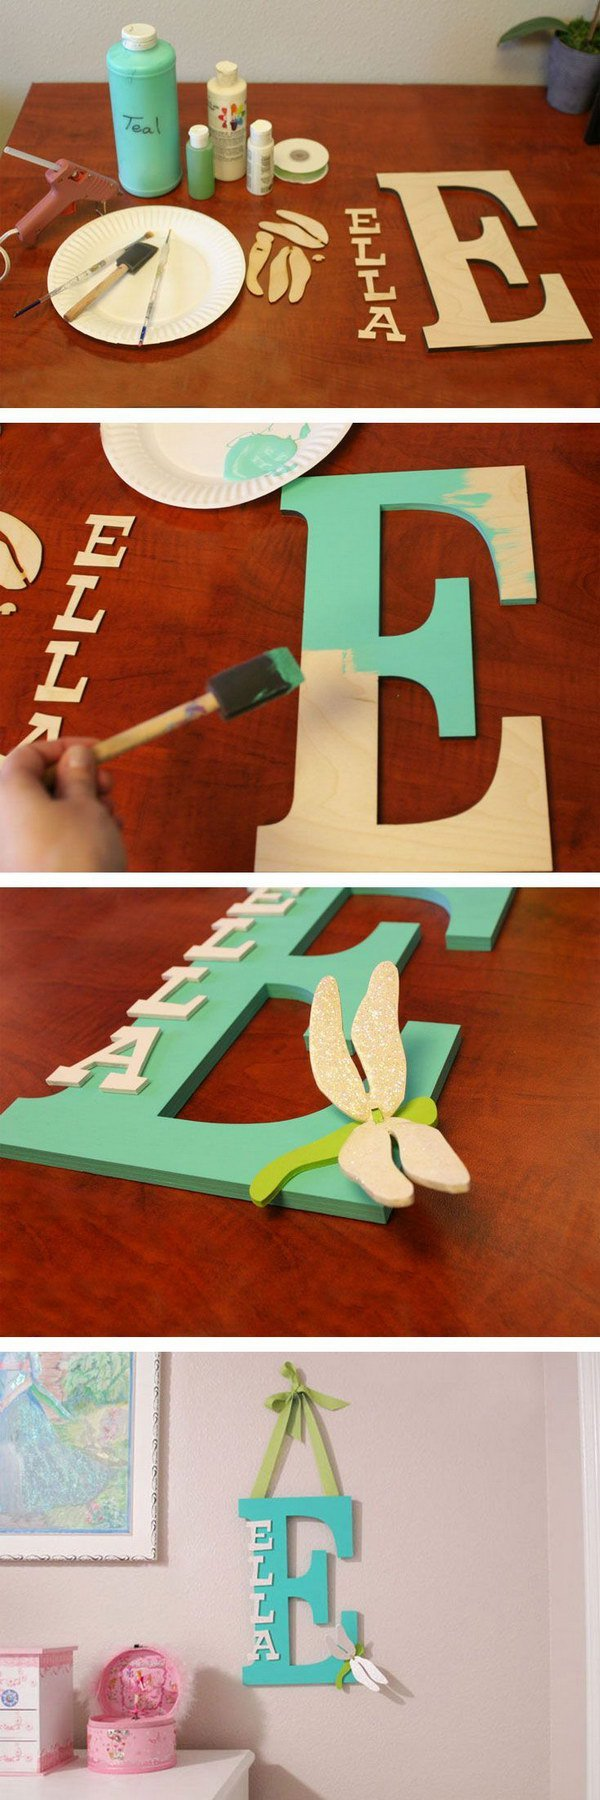 Painted Wooden Letter for Kids' Room.